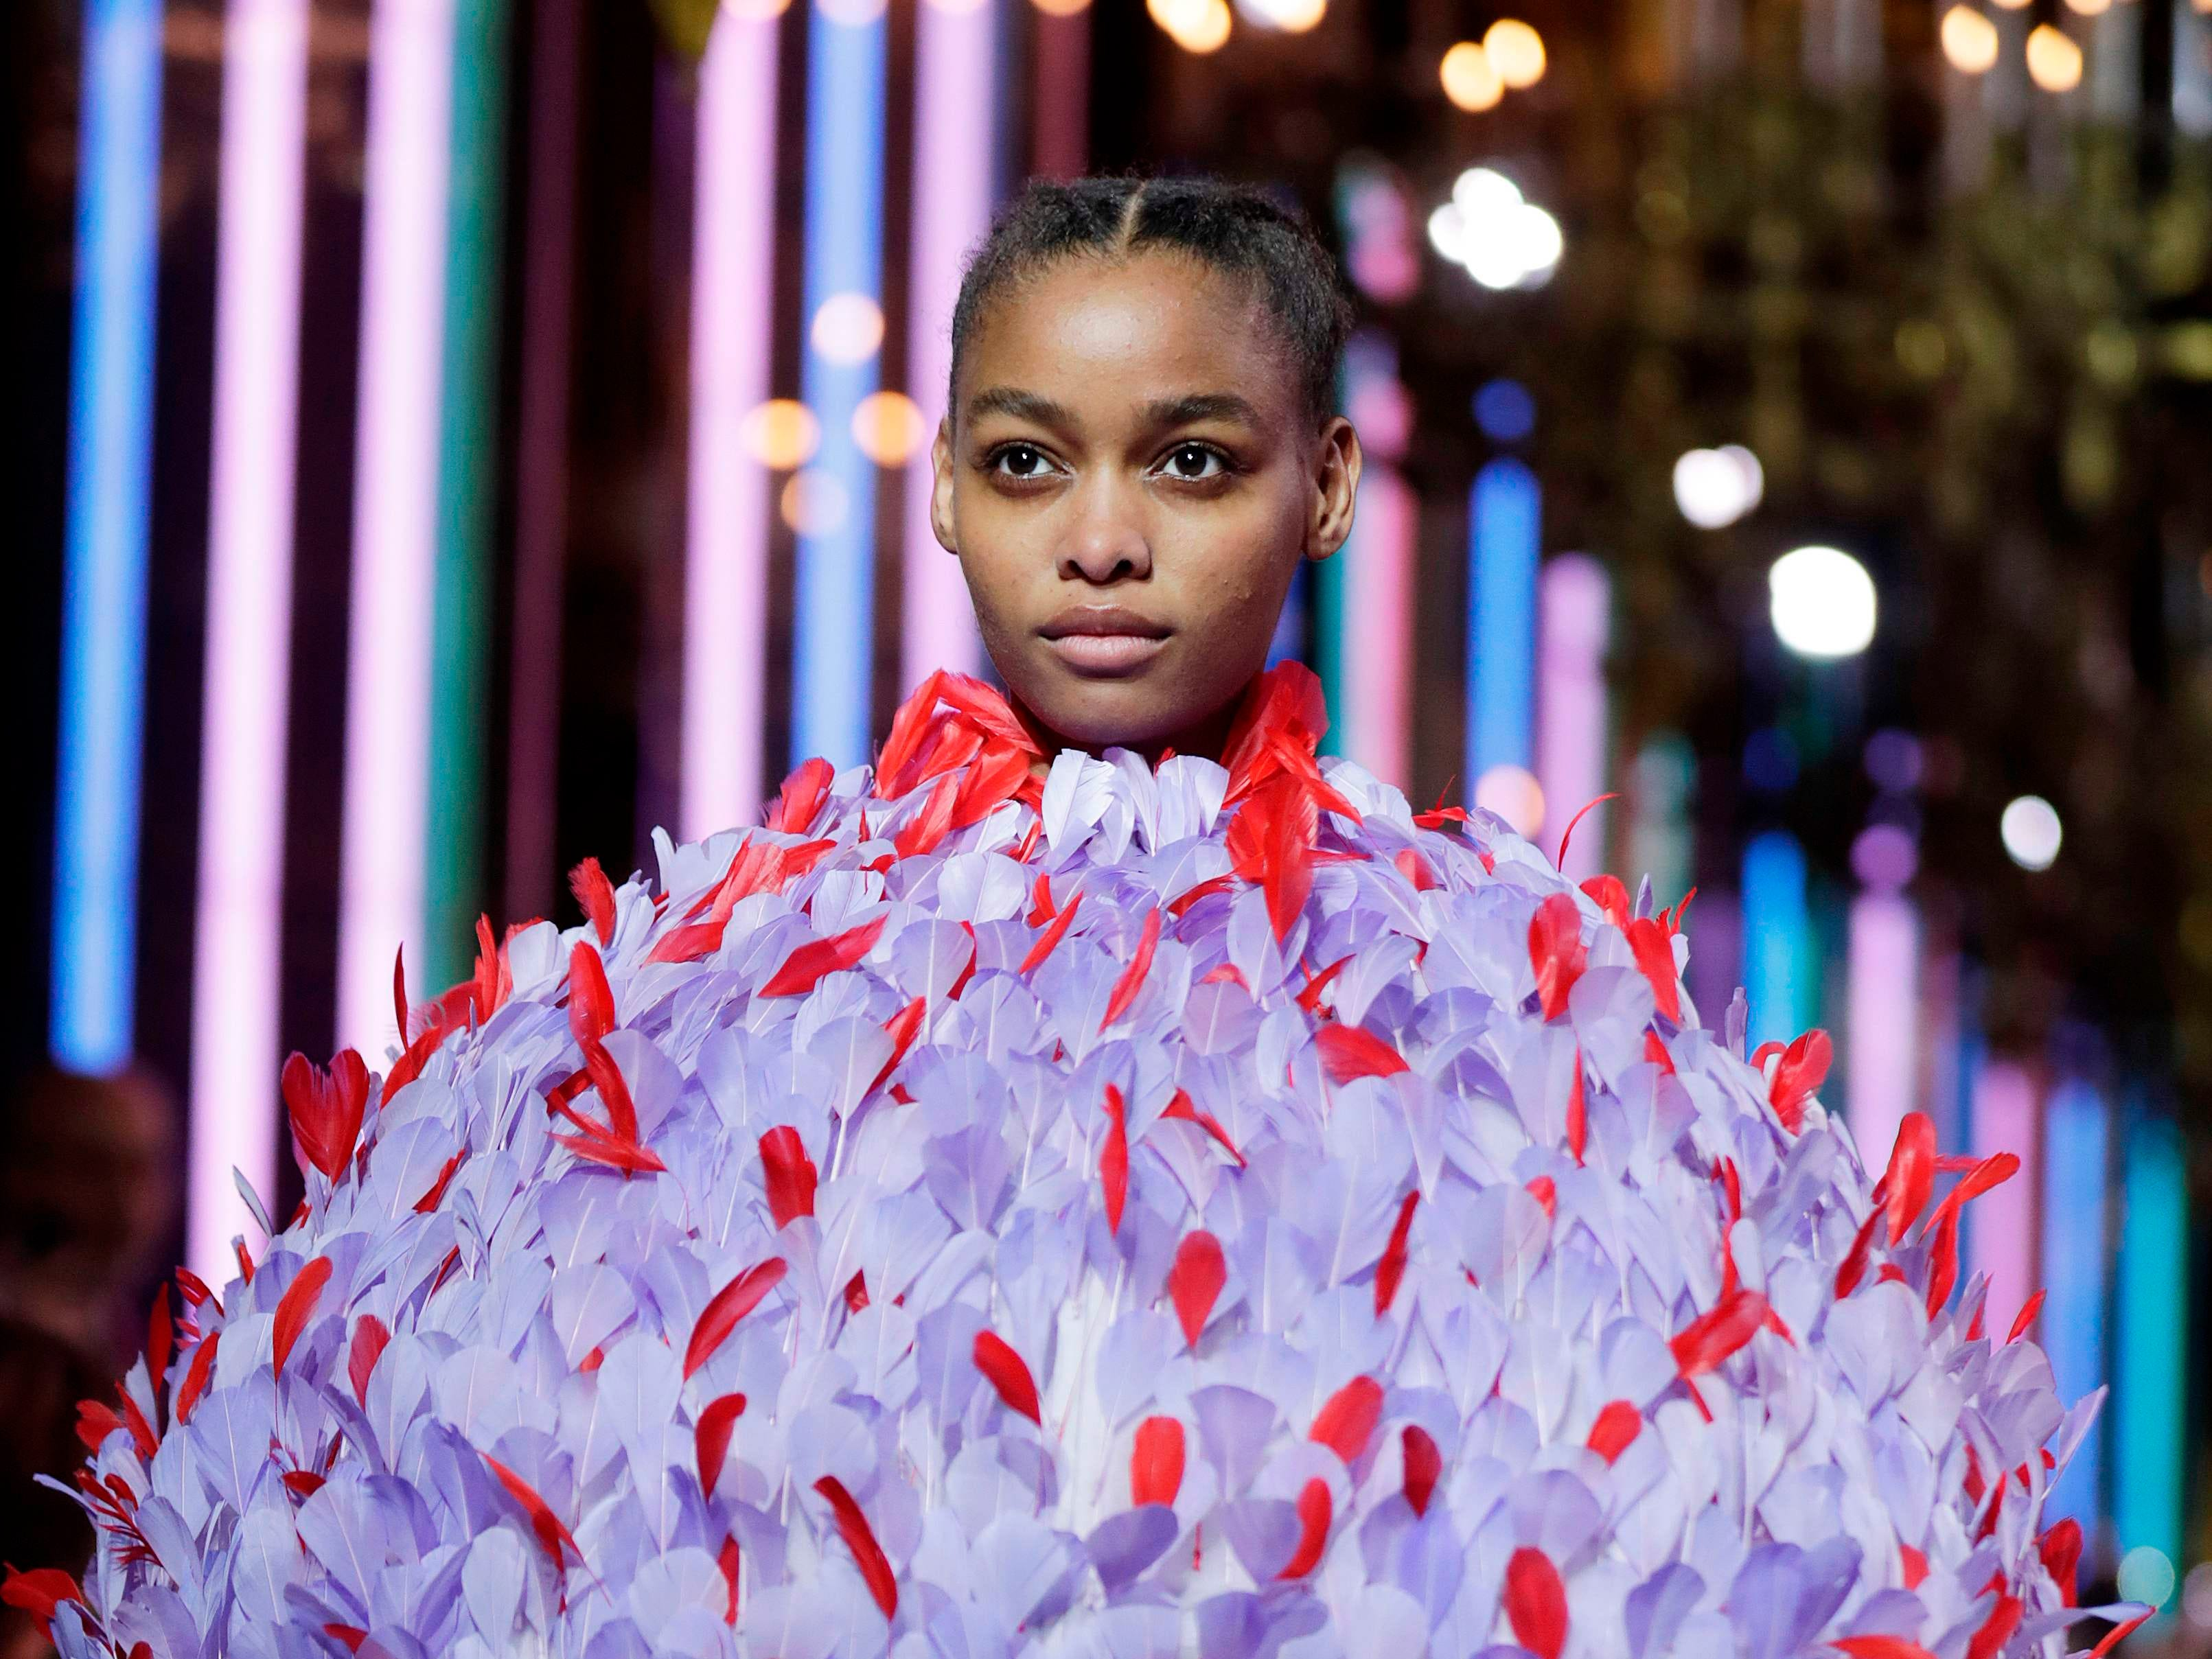 A model presents a creation by Schiaparelli during the 2019 Spring-Summer Haute Couture collection fashion show in Paris, on January 21, 2019. (Photo by Thomas SAMSON / AFP)THOMAS SAMSON/AFP/Getty Images ORIG FILE ID: AFP_1CG265